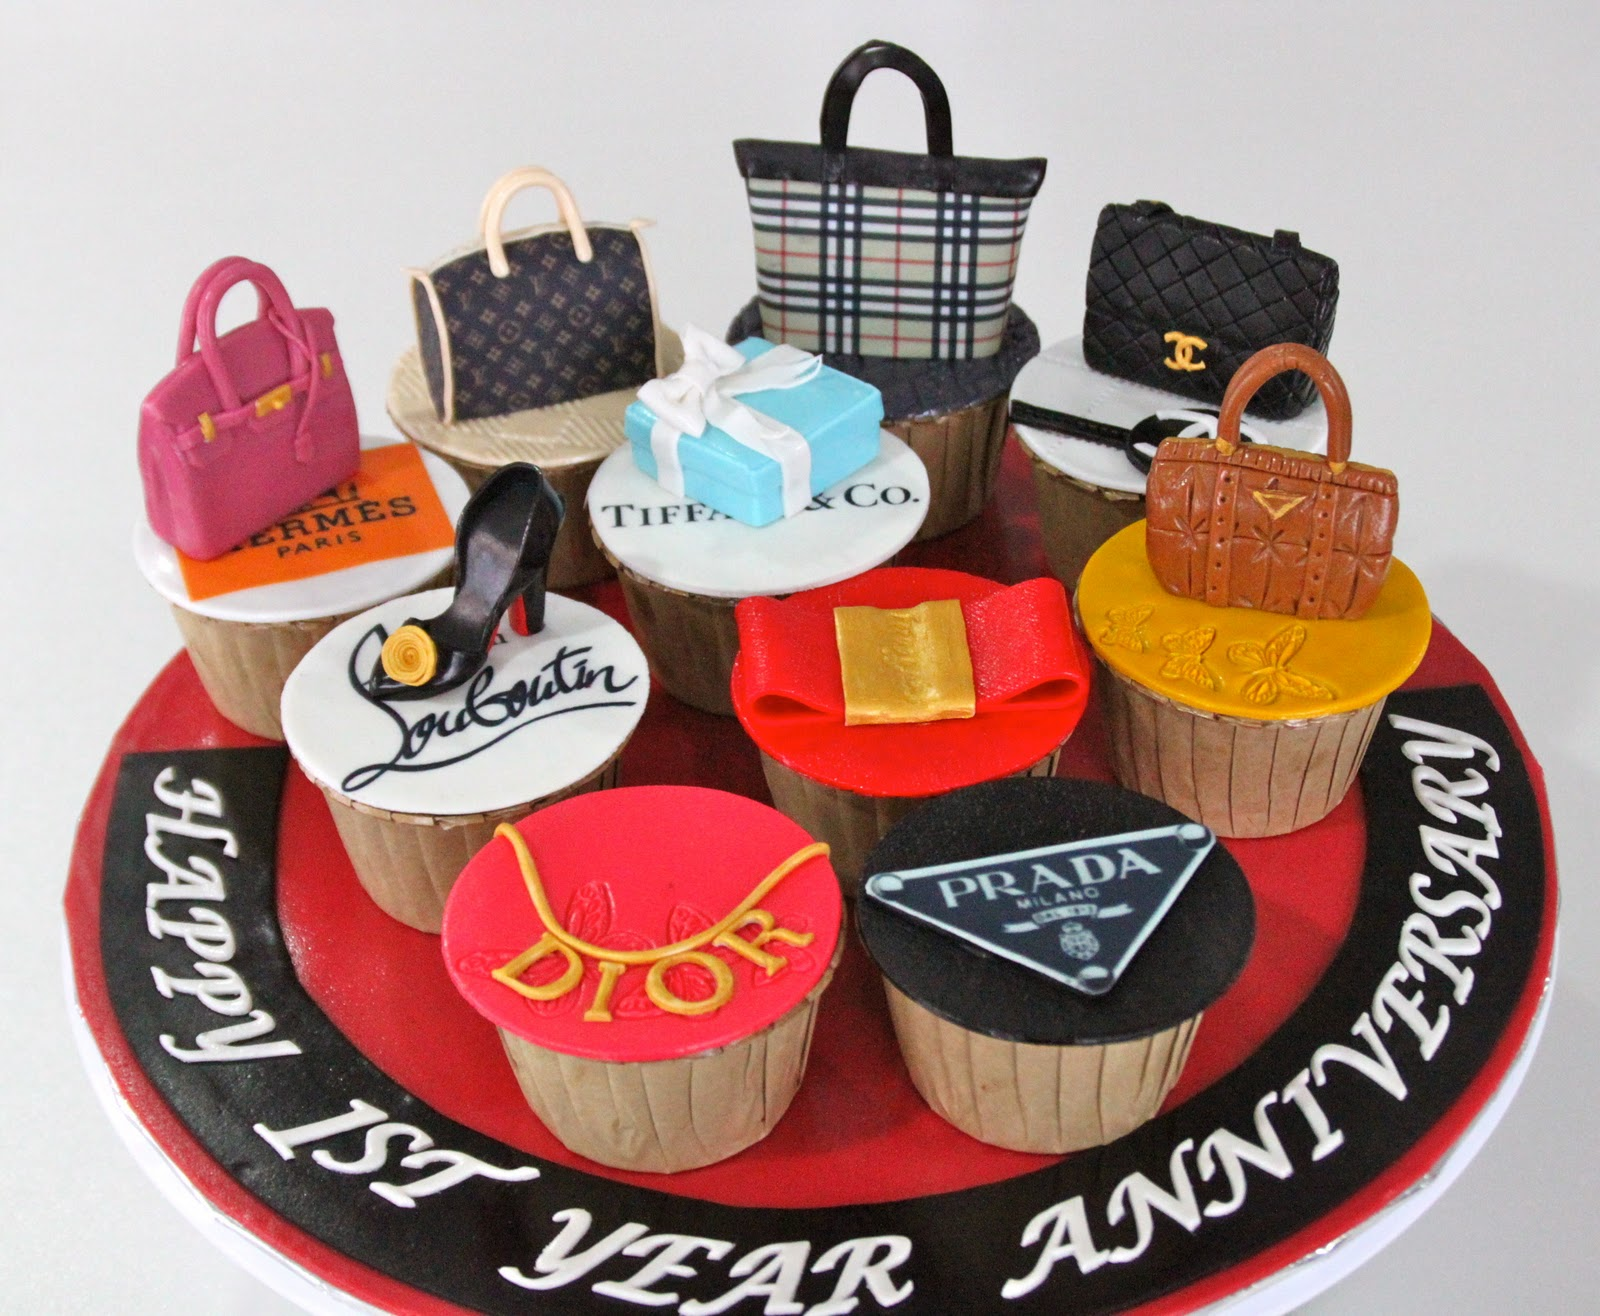 Celebrate with cake!: fashion anniversary cupcakes